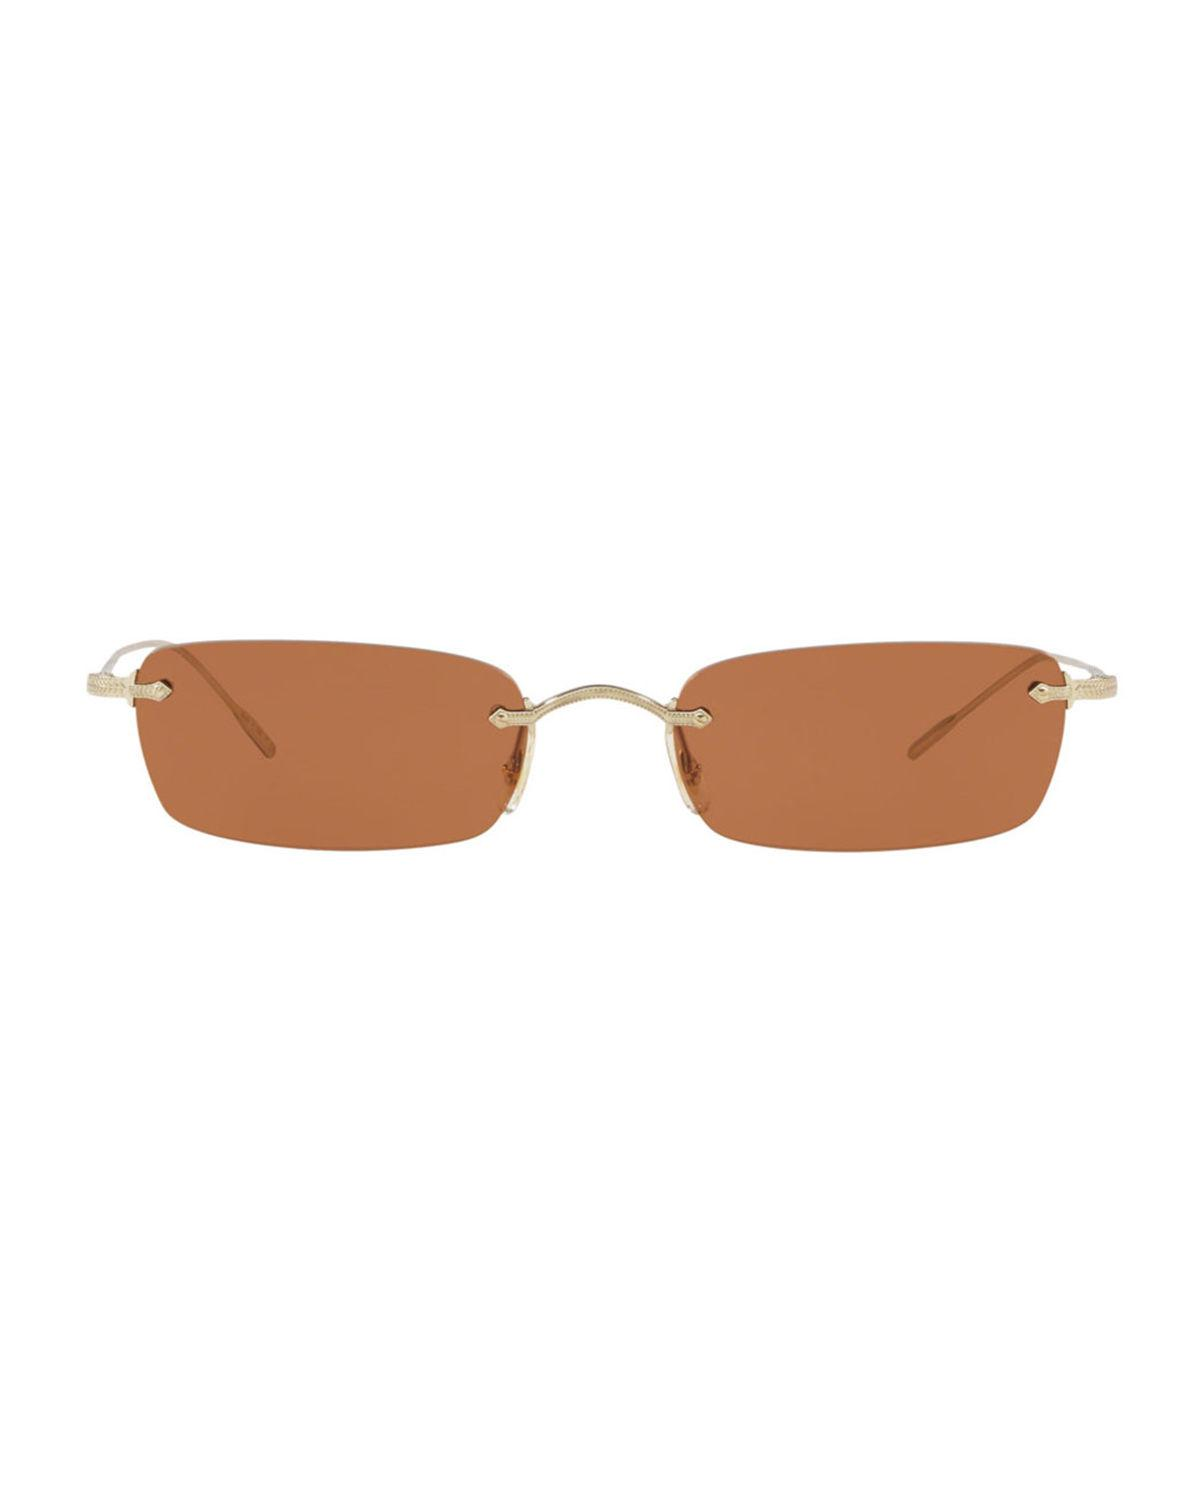 a71aa0e9f5 Lyst - Oliver Peoples Daveigh Rimless Rectangle Metal Sunglasses in Brown